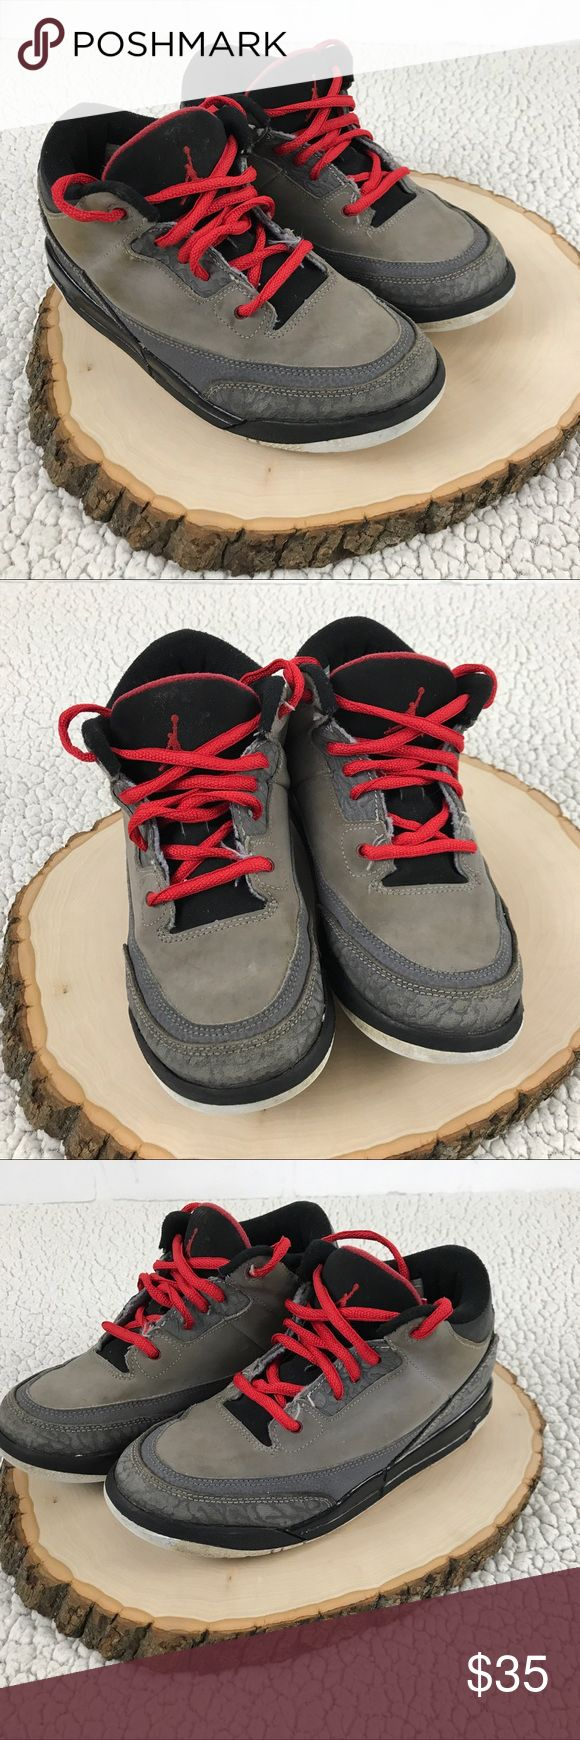 Nike Air Jordan Retro III Youth Basketball Shoes These sneakers are previously worn, and have lots of life left in them. They were outgrown and are still in wearable condition. Please see photos for detail. Nike Shoes Sneakers